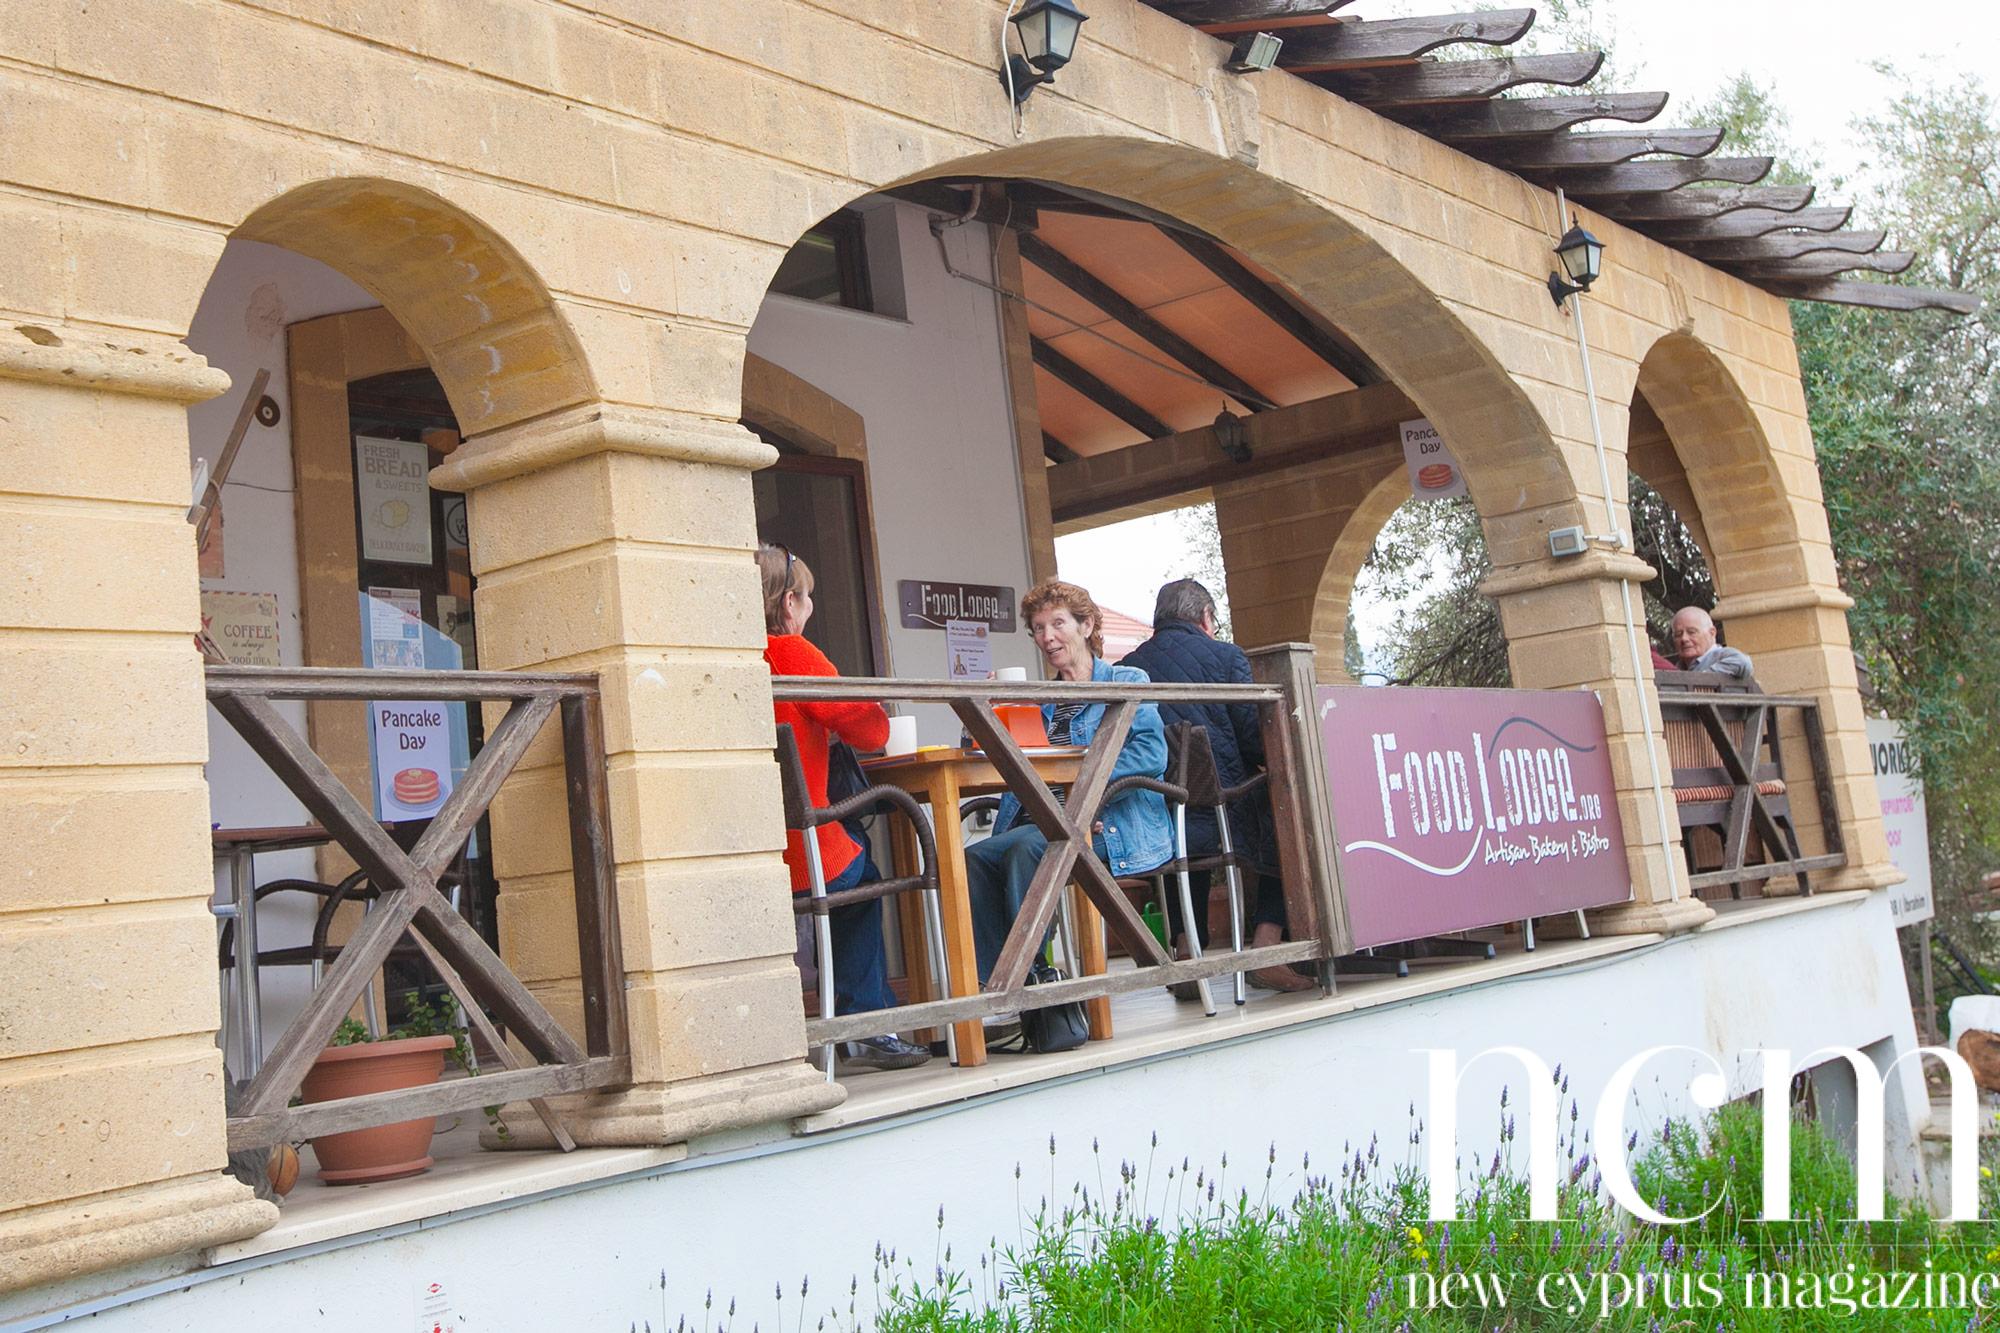 The entrance of the Food Lodge North Cyprus